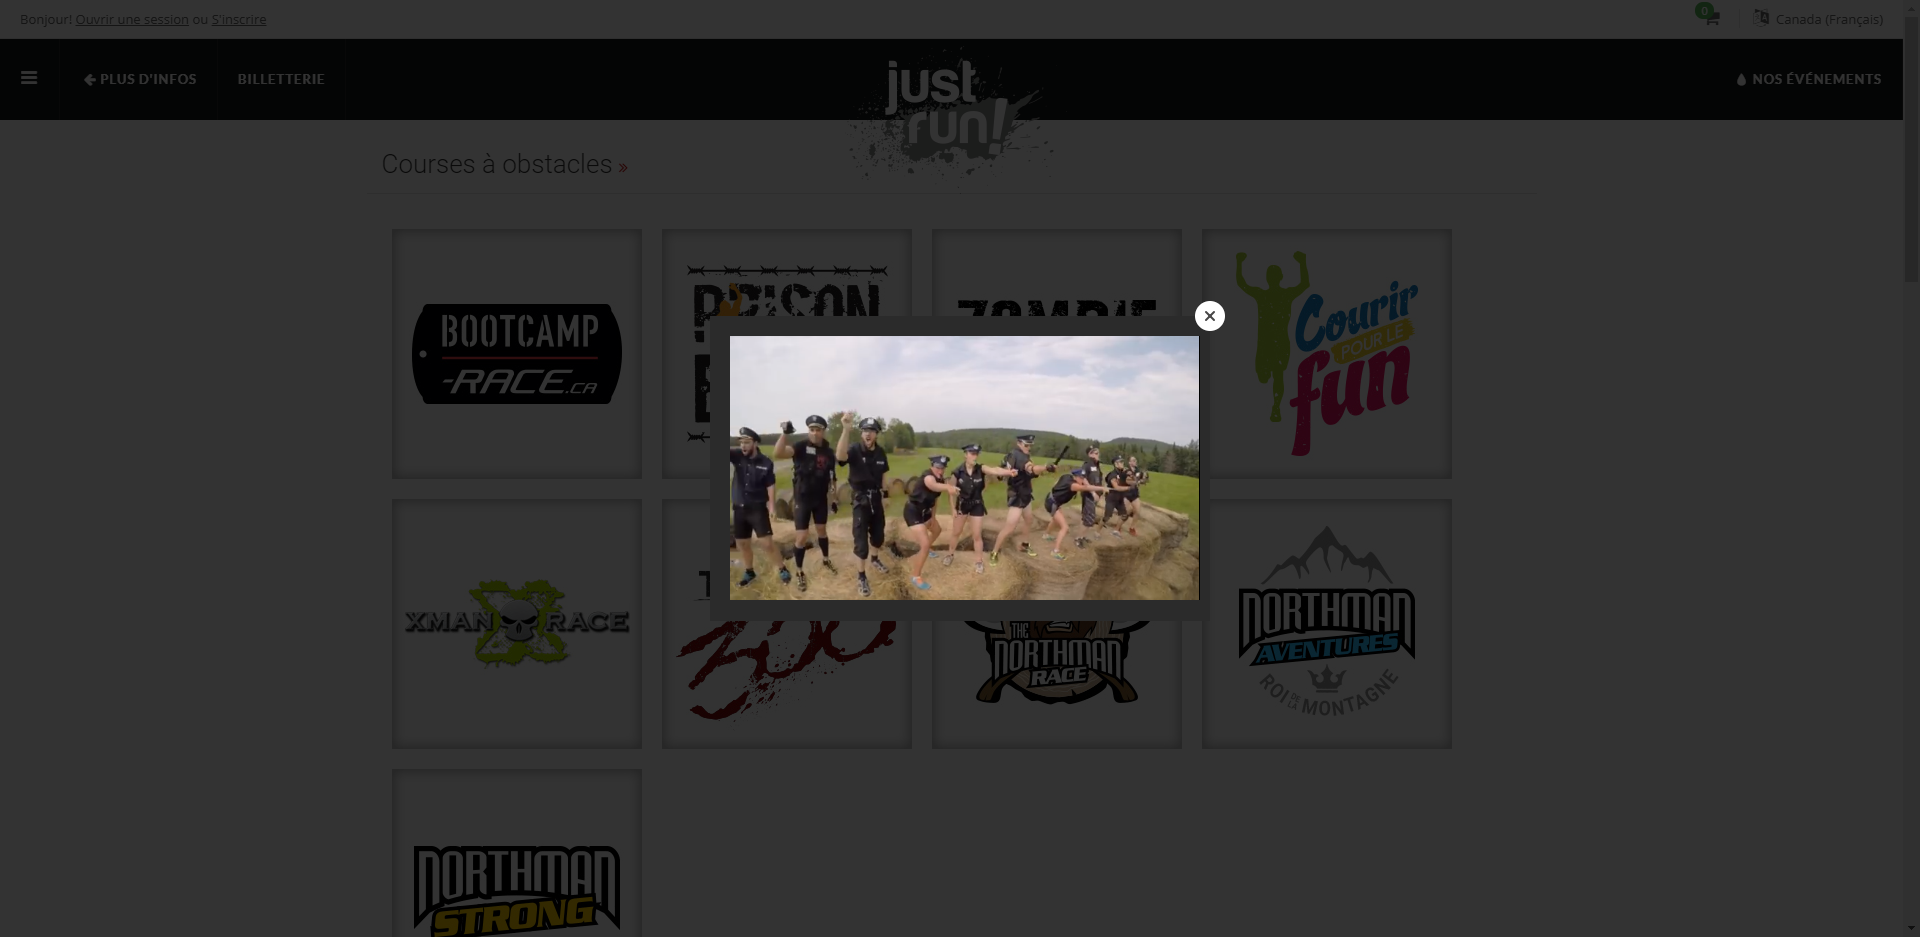 Justrun.ca's video pop-up featuring a large closing X